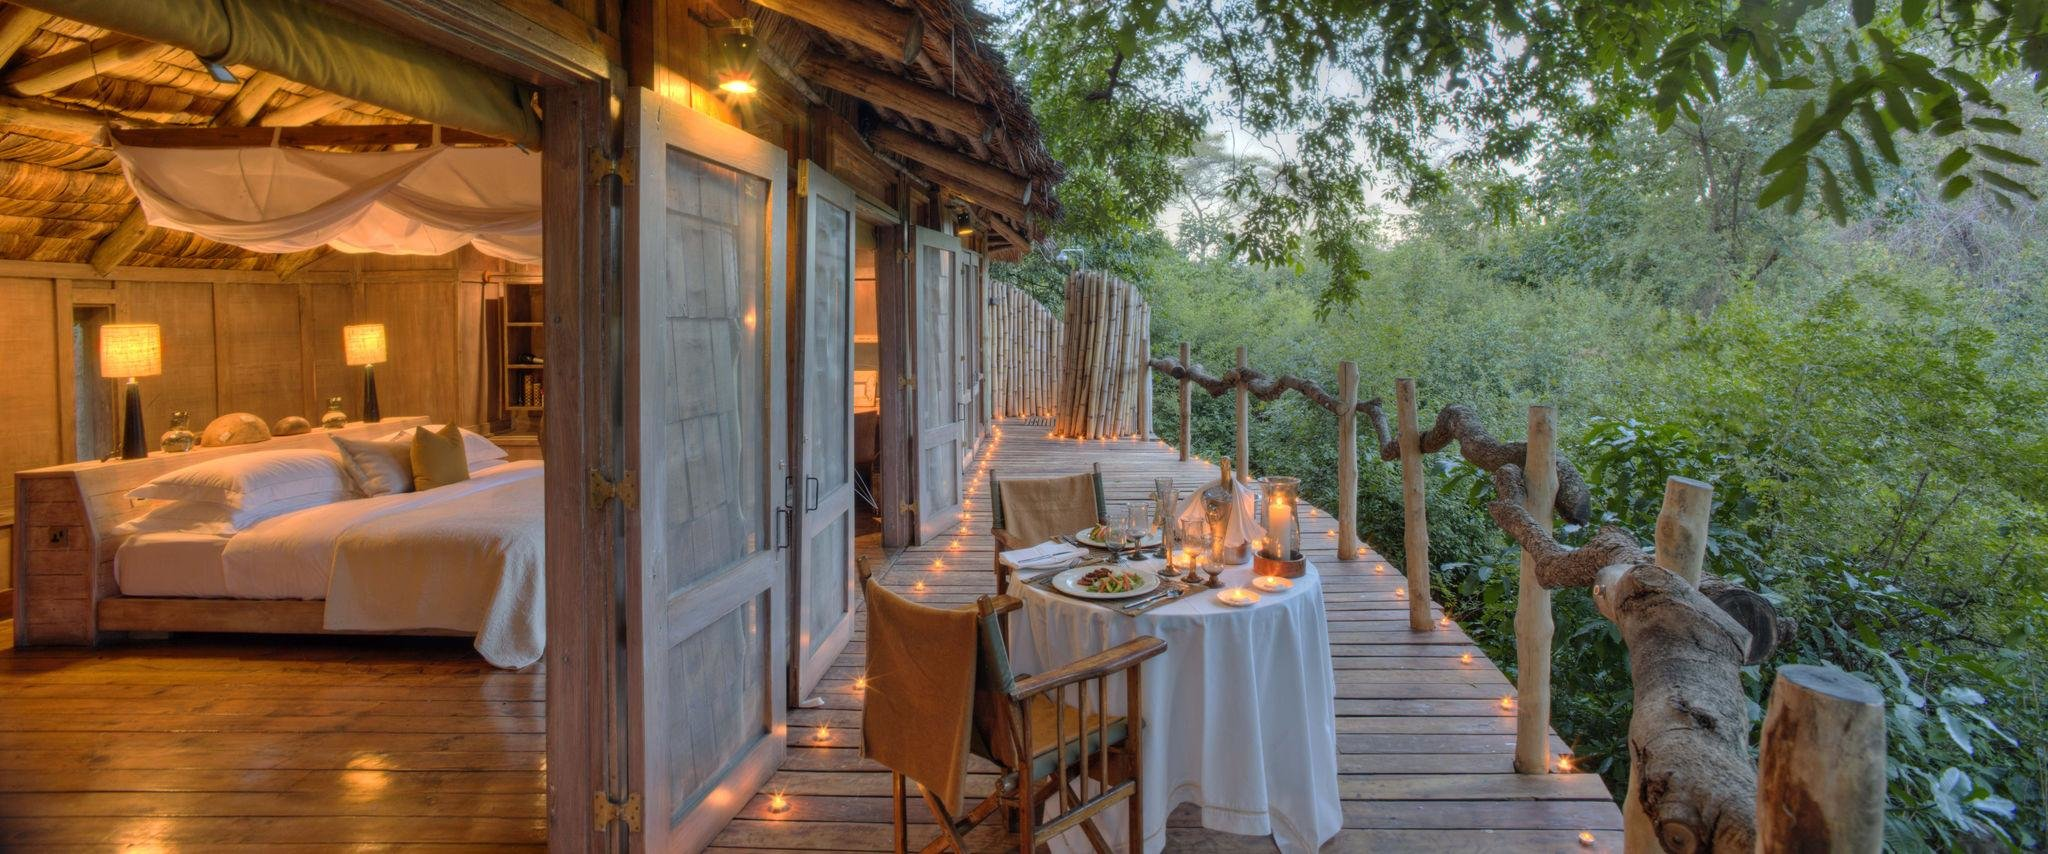 lake-manyara-tree-lodge-room-treehouse-deck-01